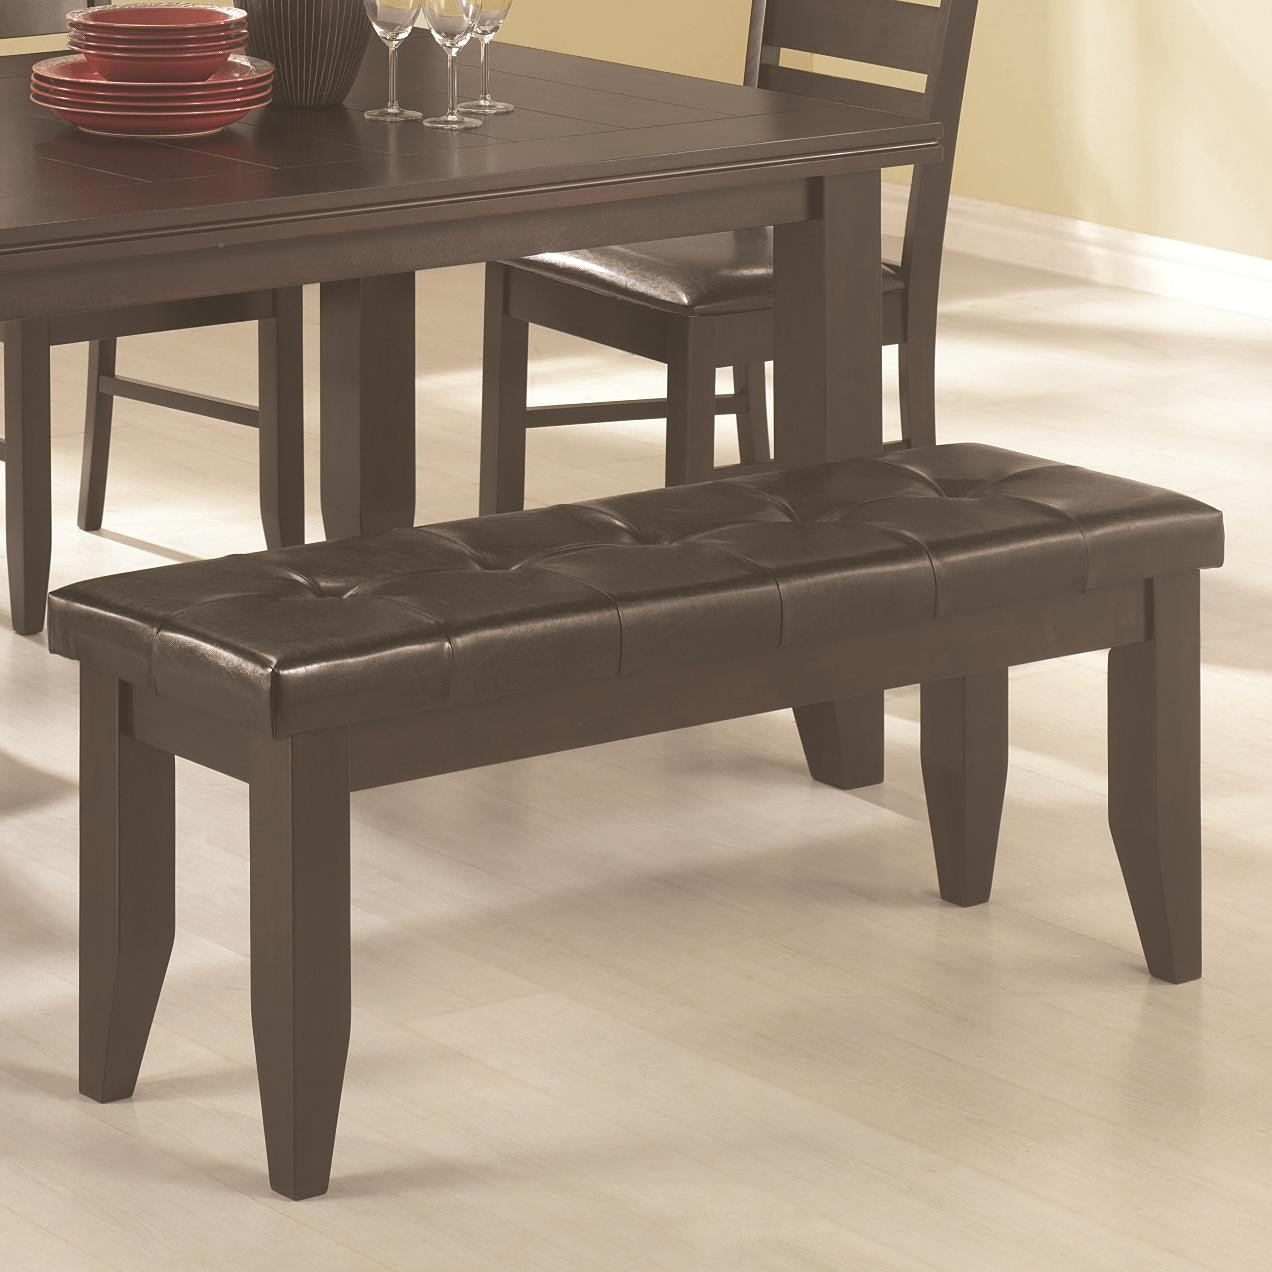 Coaster Dining Room Dining Table 102771 Furniture Plus